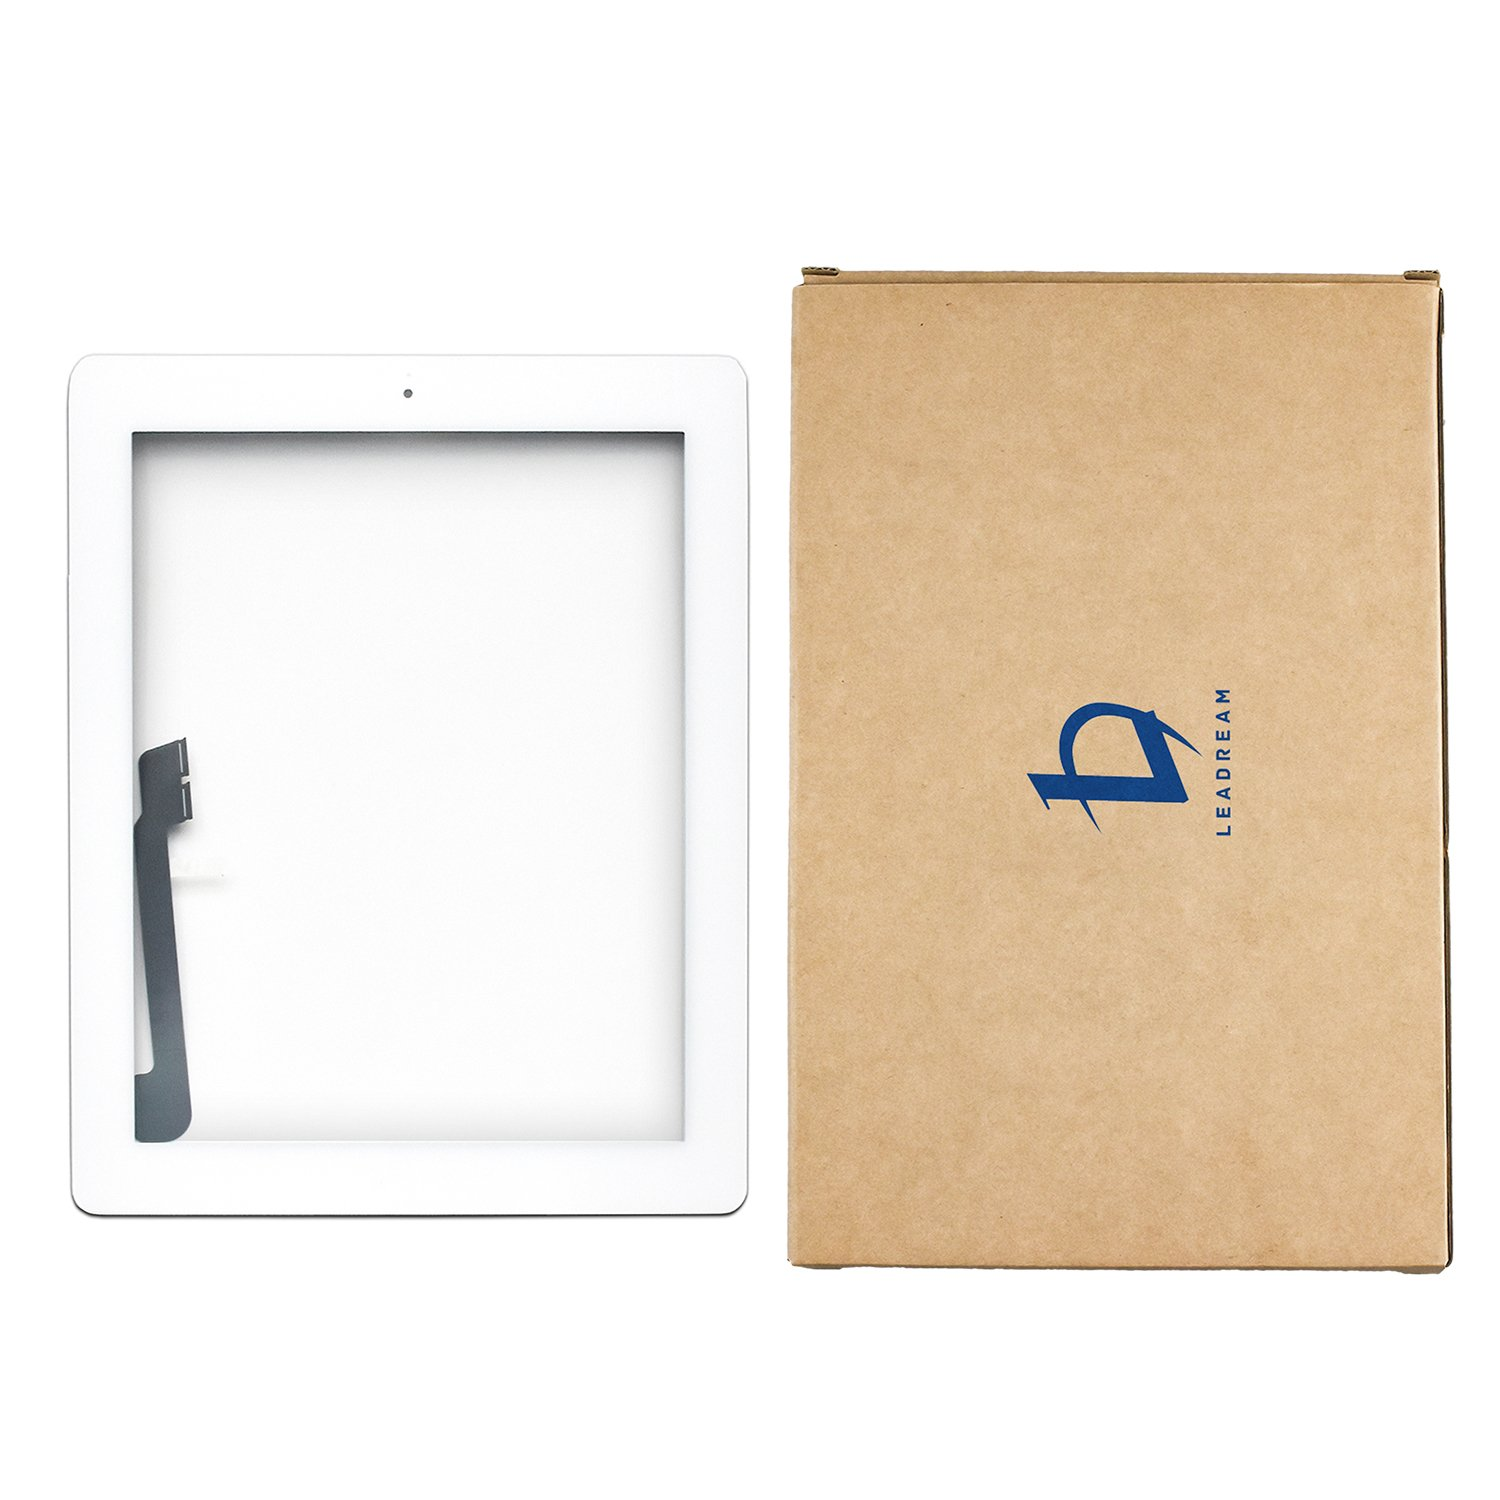 White Touch Screen Digitizer Assembled with Home Button Strong Adhesive for iPad 3 3rd Generation A1416 A1403 A1430 by Leadream (Image #5)